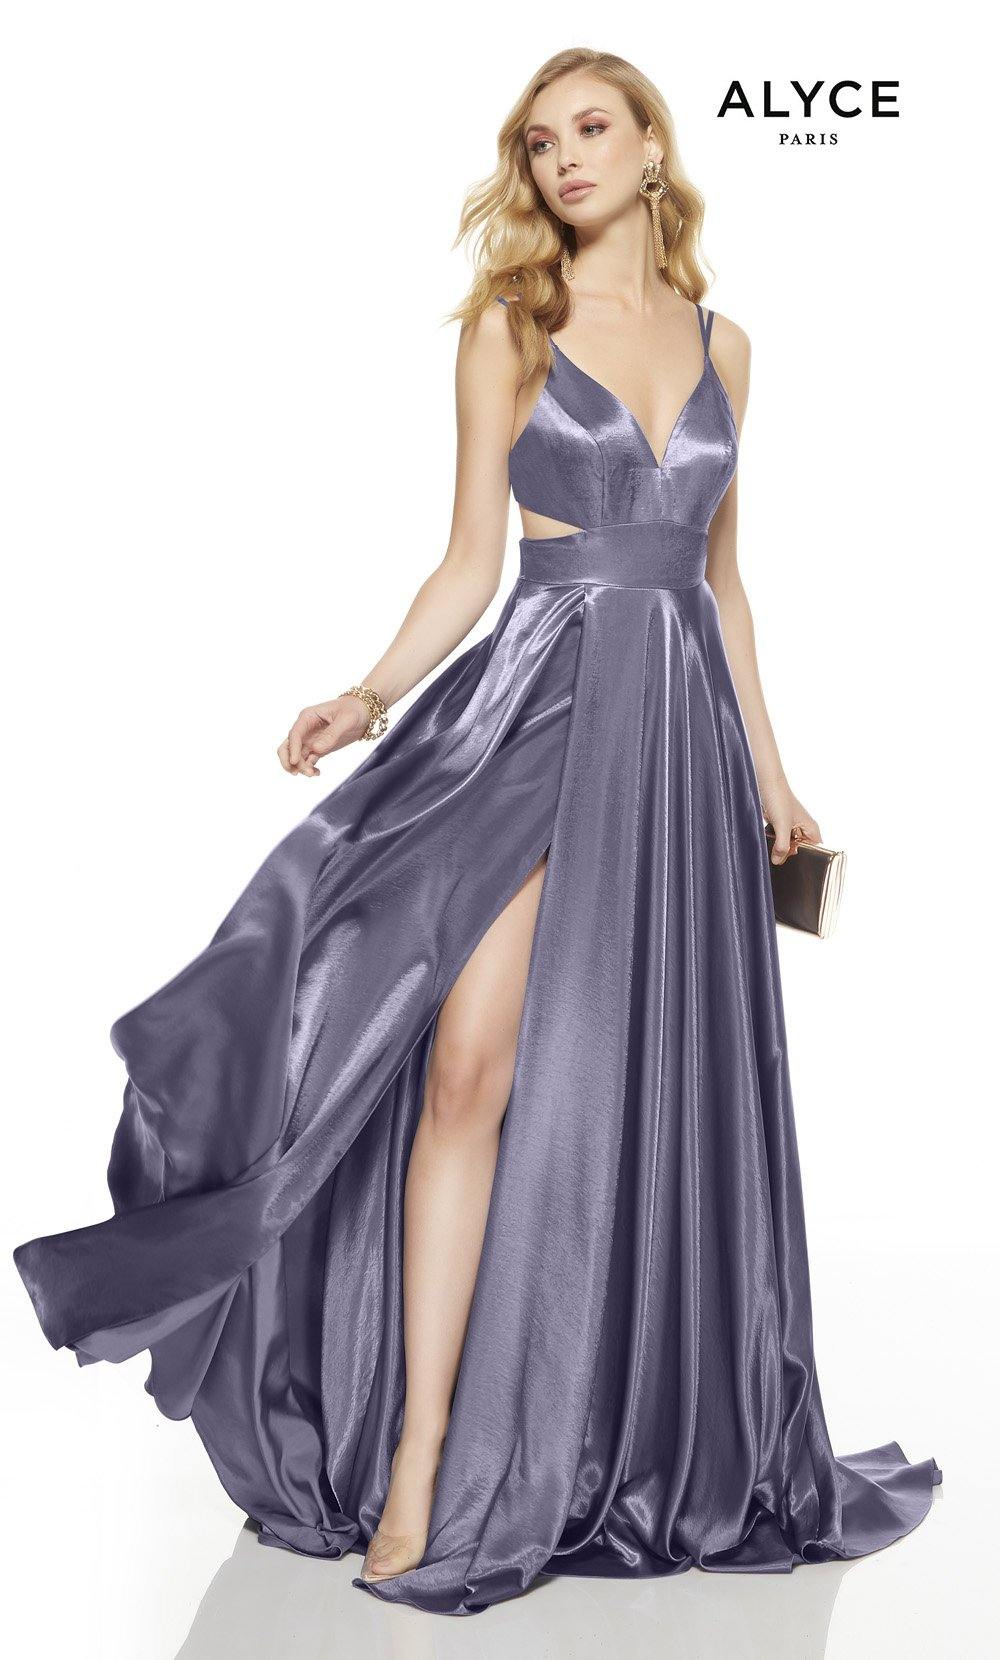 Lilac-Grey prom dress with a v-neckline, side cutouts and a high slit